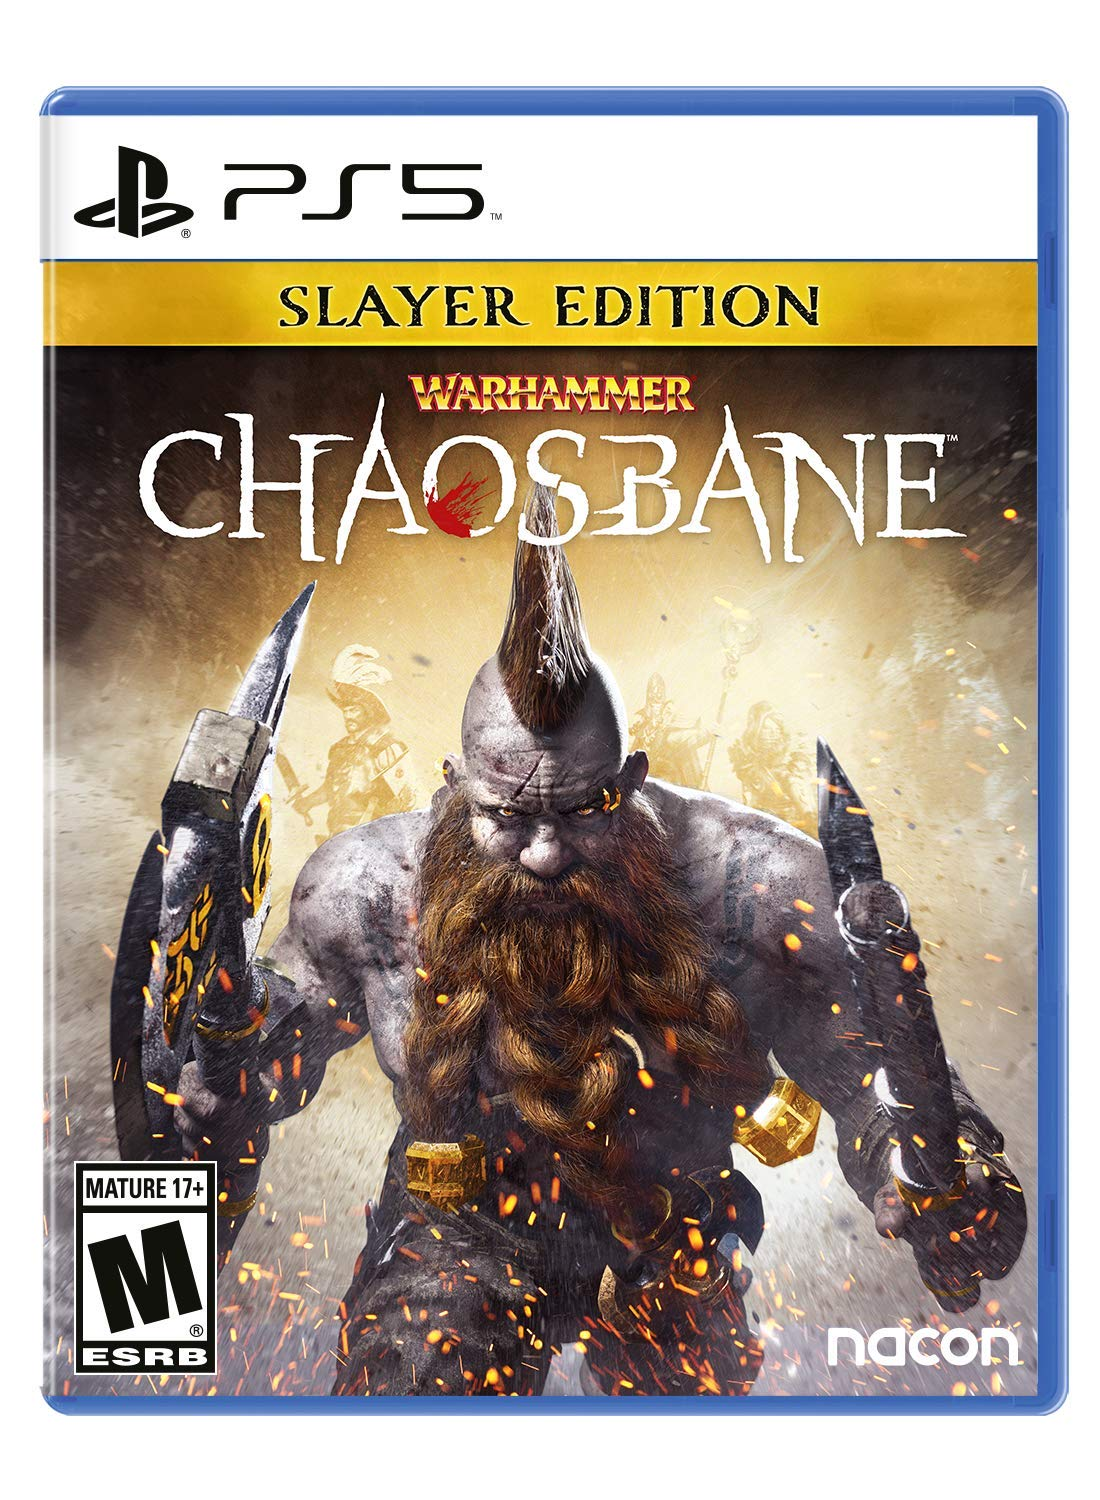 PS5 Warhammer Chaosbane Slayer Edition PlayStation 5